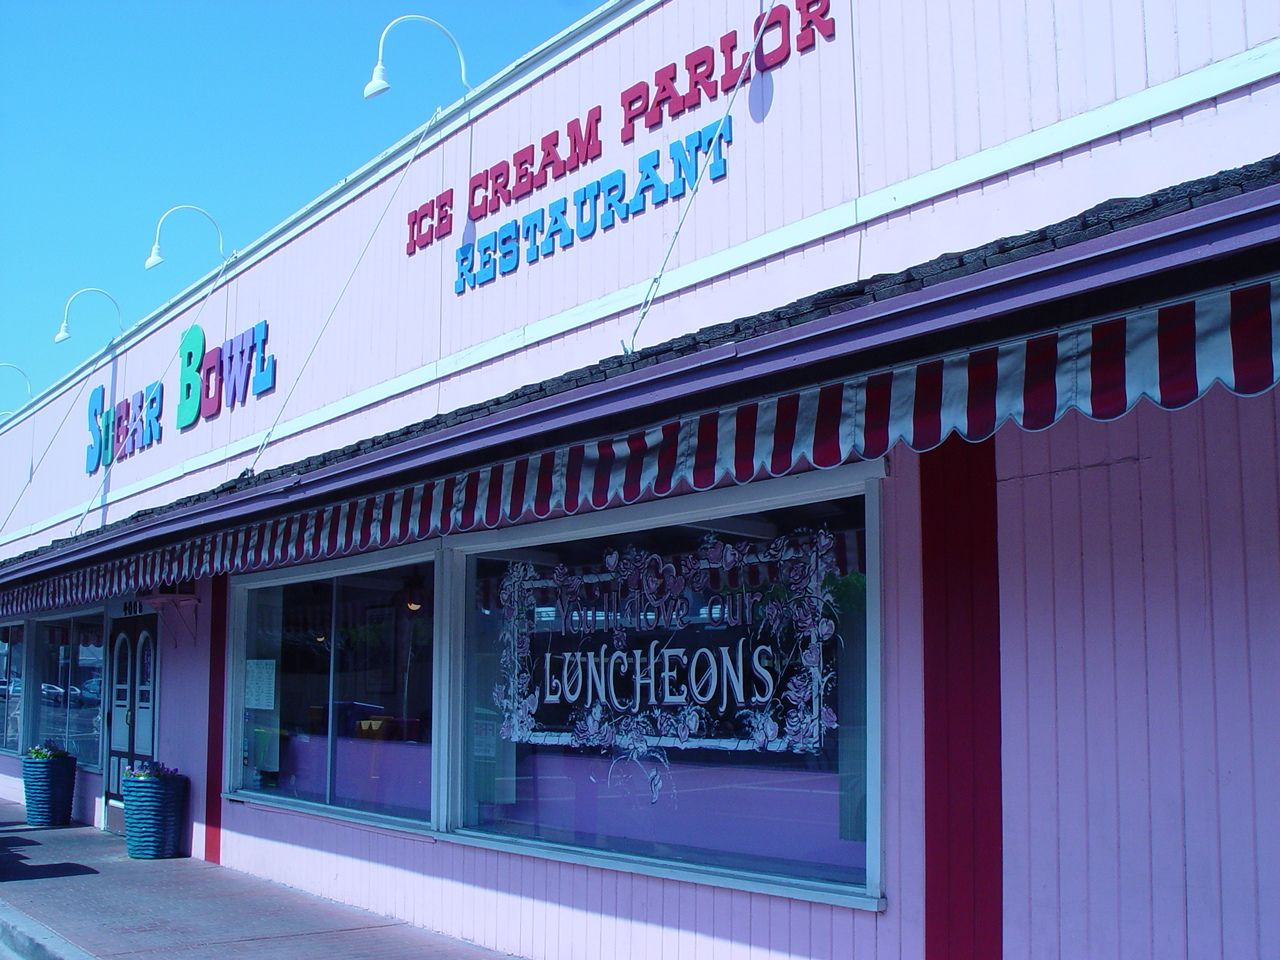 c81134d2c14ce1 Sugar Bowl ice cream parlor in Old Town Scottsdale